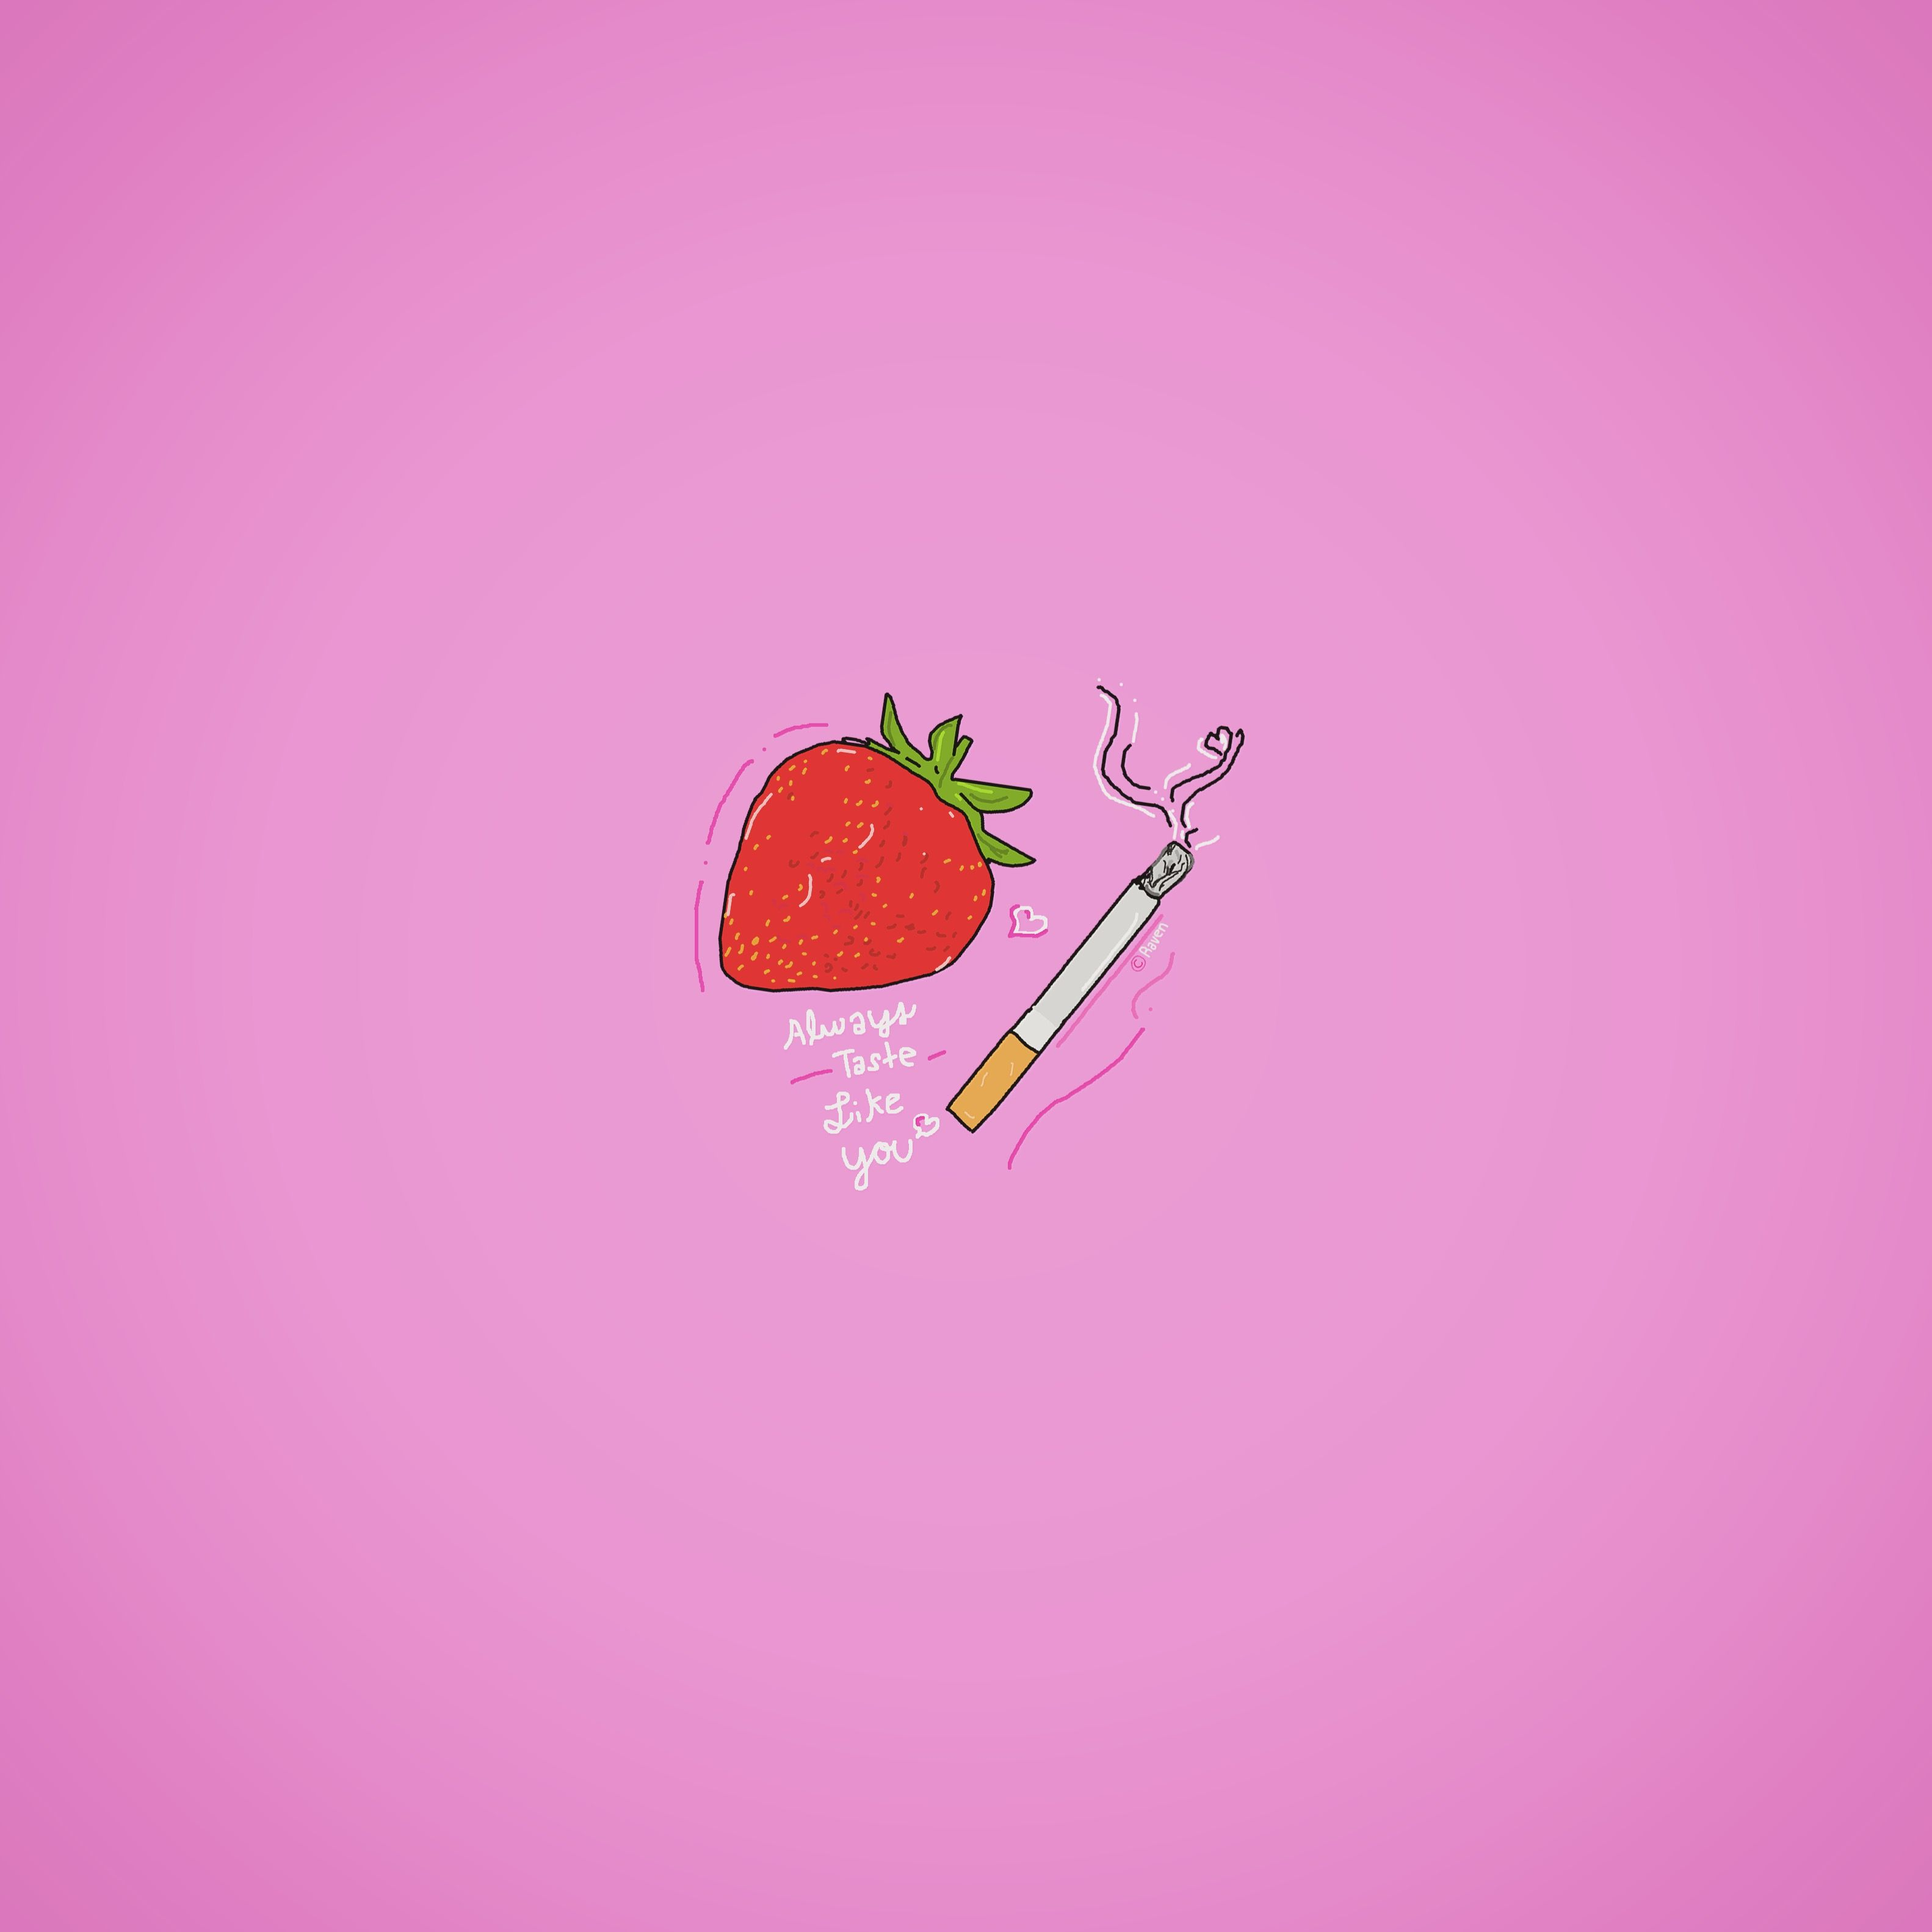 Strawberry Aesthetic Wallpapers On Wallpaperdog Find 26 images that you can add to blogs, websites, or as desktop and phone wallpapers. strawberry aesthetic wallpapers on